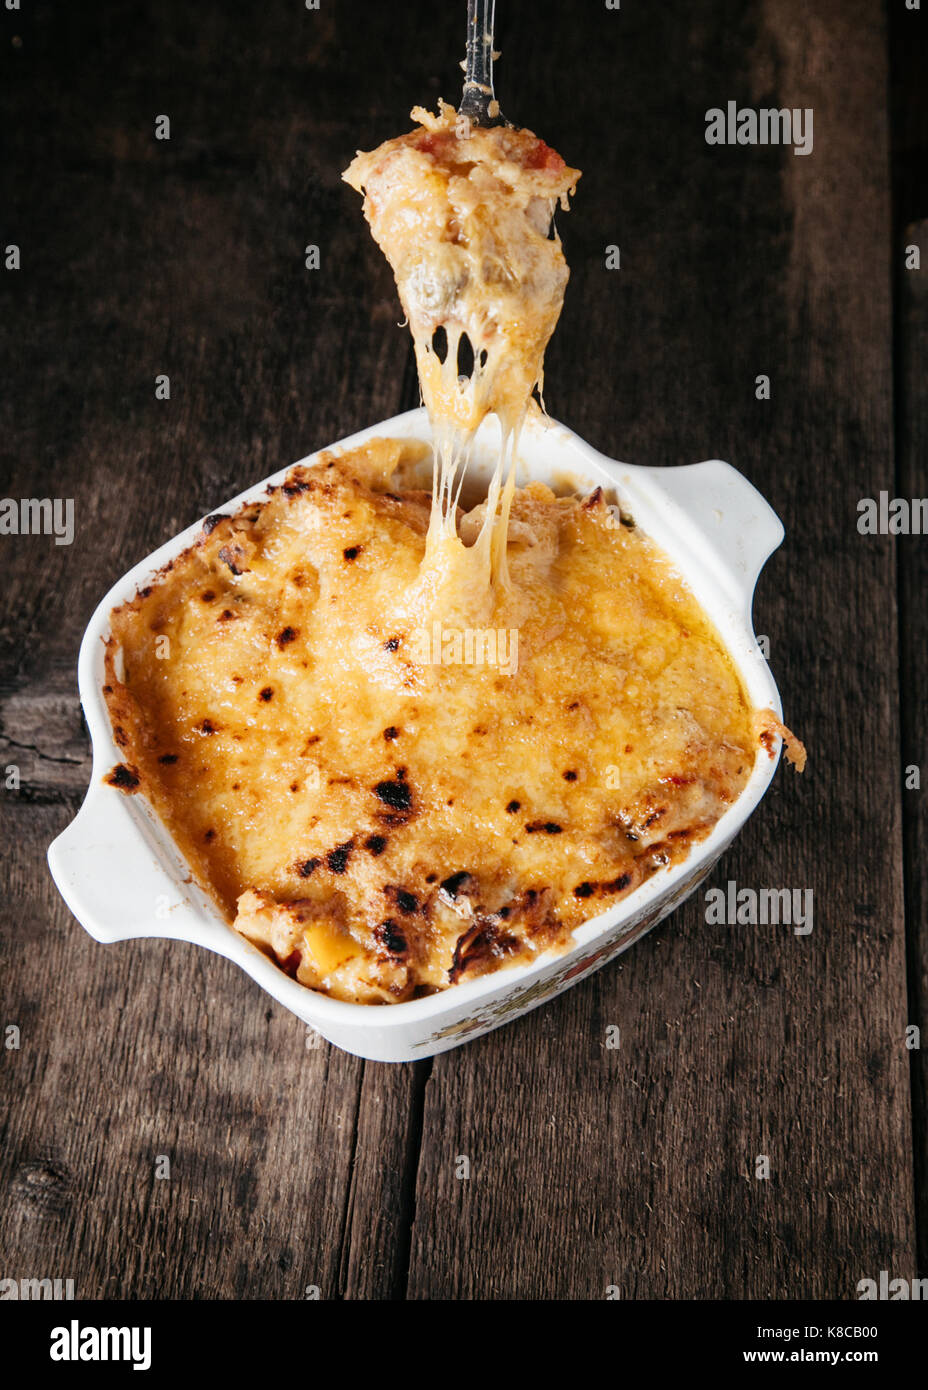 Creamy baked chicken casserole layered with shreded cheddar cheese on wooden surface - Stock Image